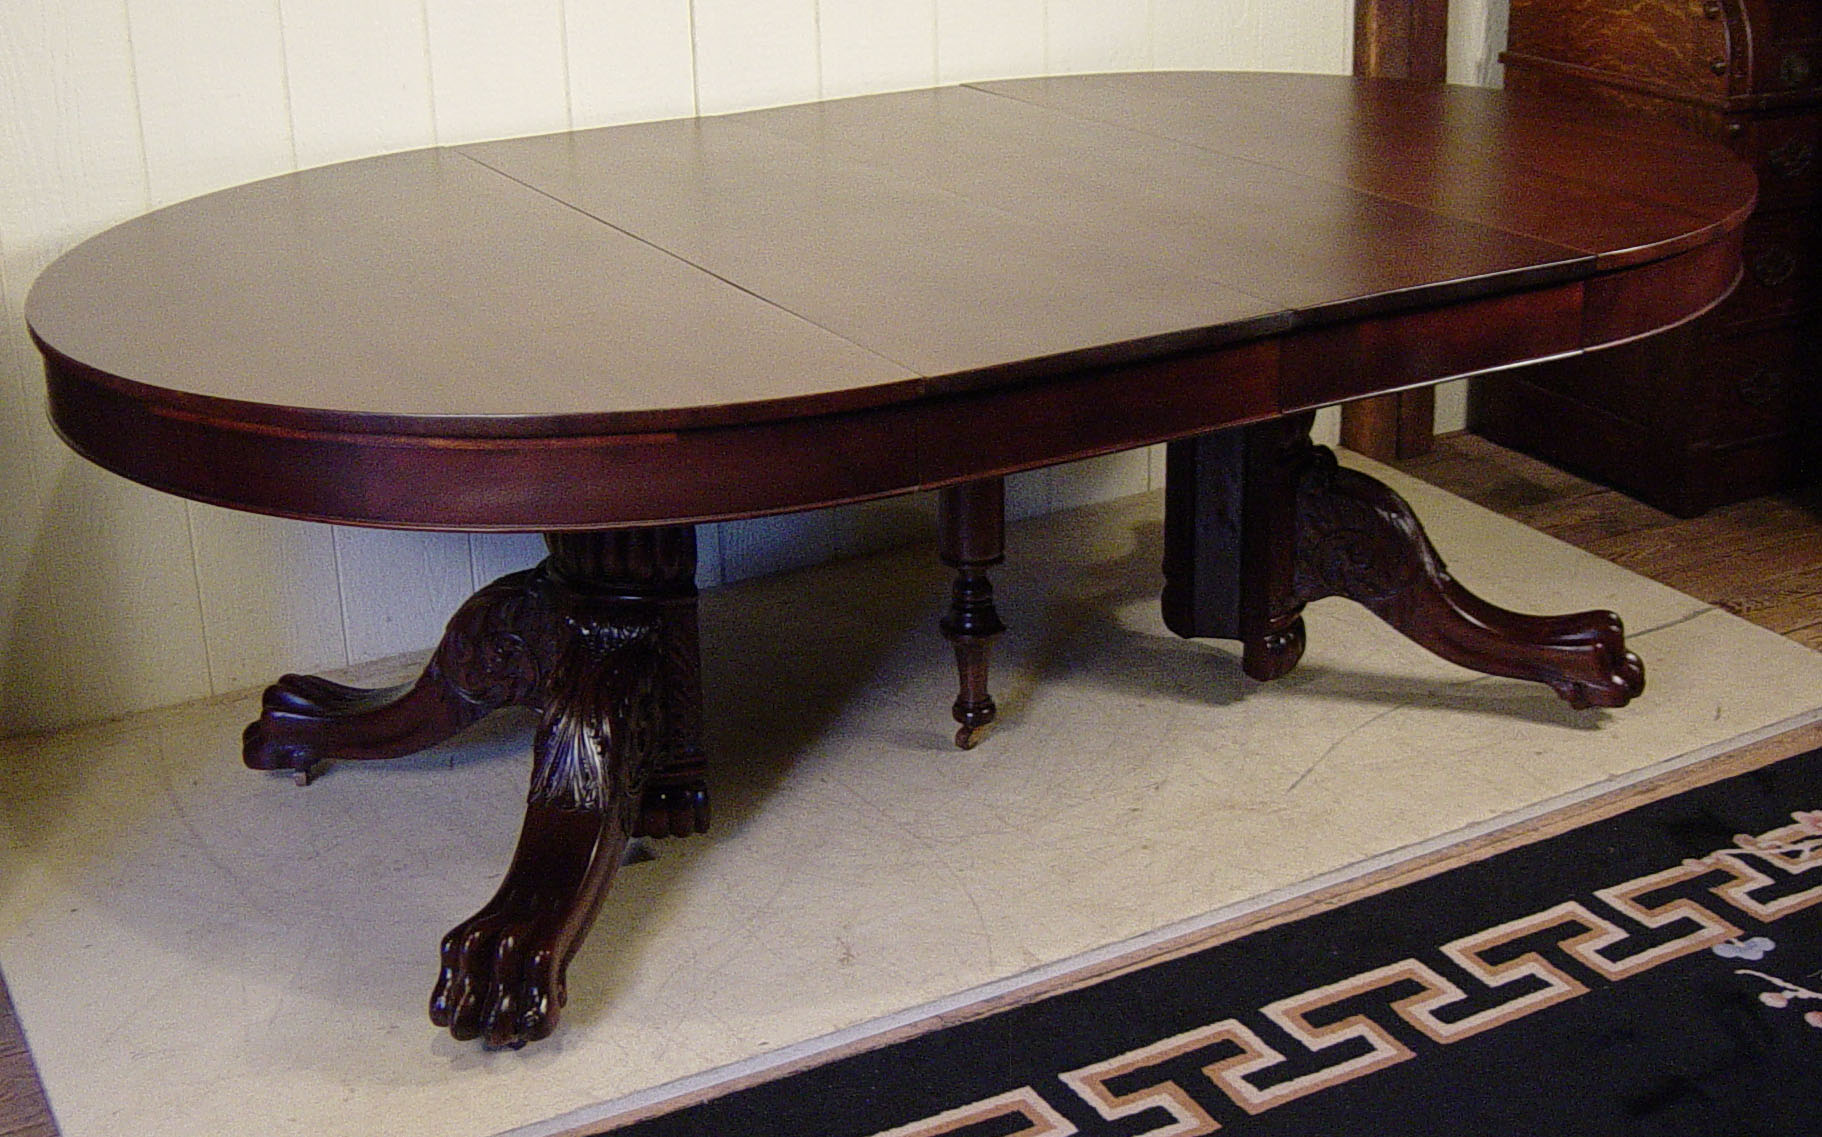 54quot Round Mahogany Claw foot Table with 4 orignal 16quot leaves : DSC00001 from www.dougschmittantiques.com size 1822 x 1137 jpeg 391kB